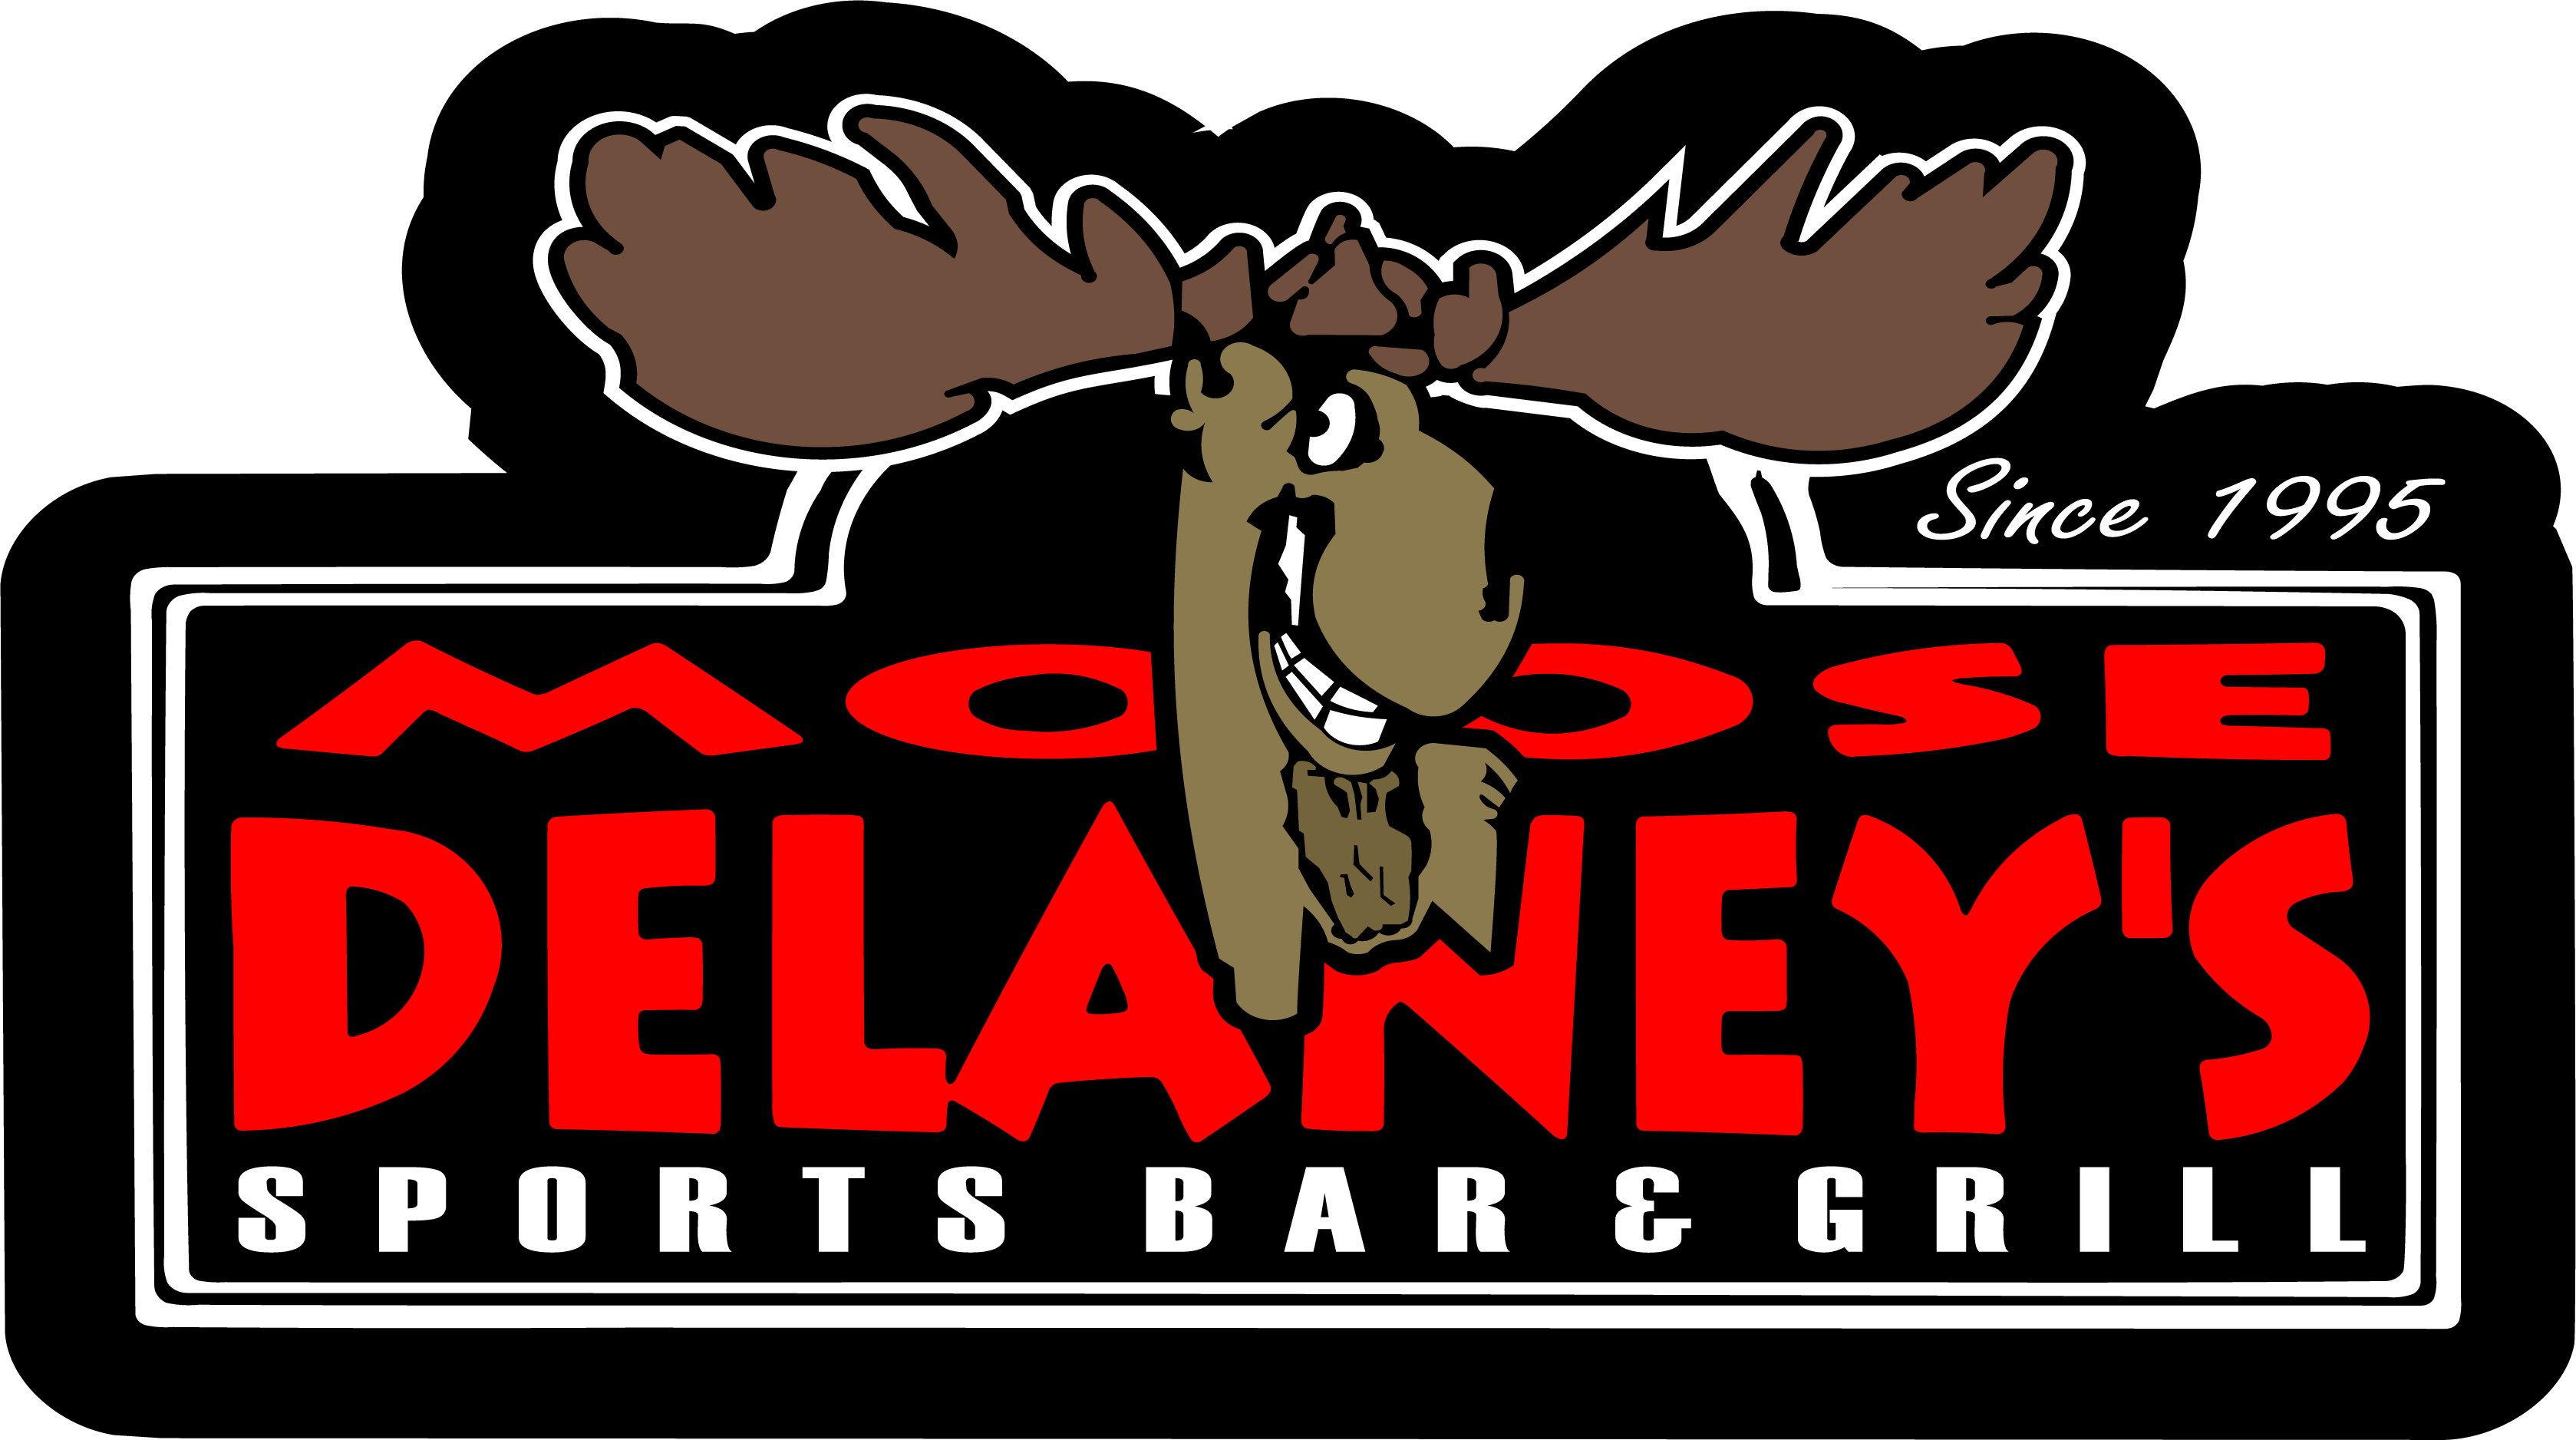 Booth clipart bar grill. Moose delaney s sports